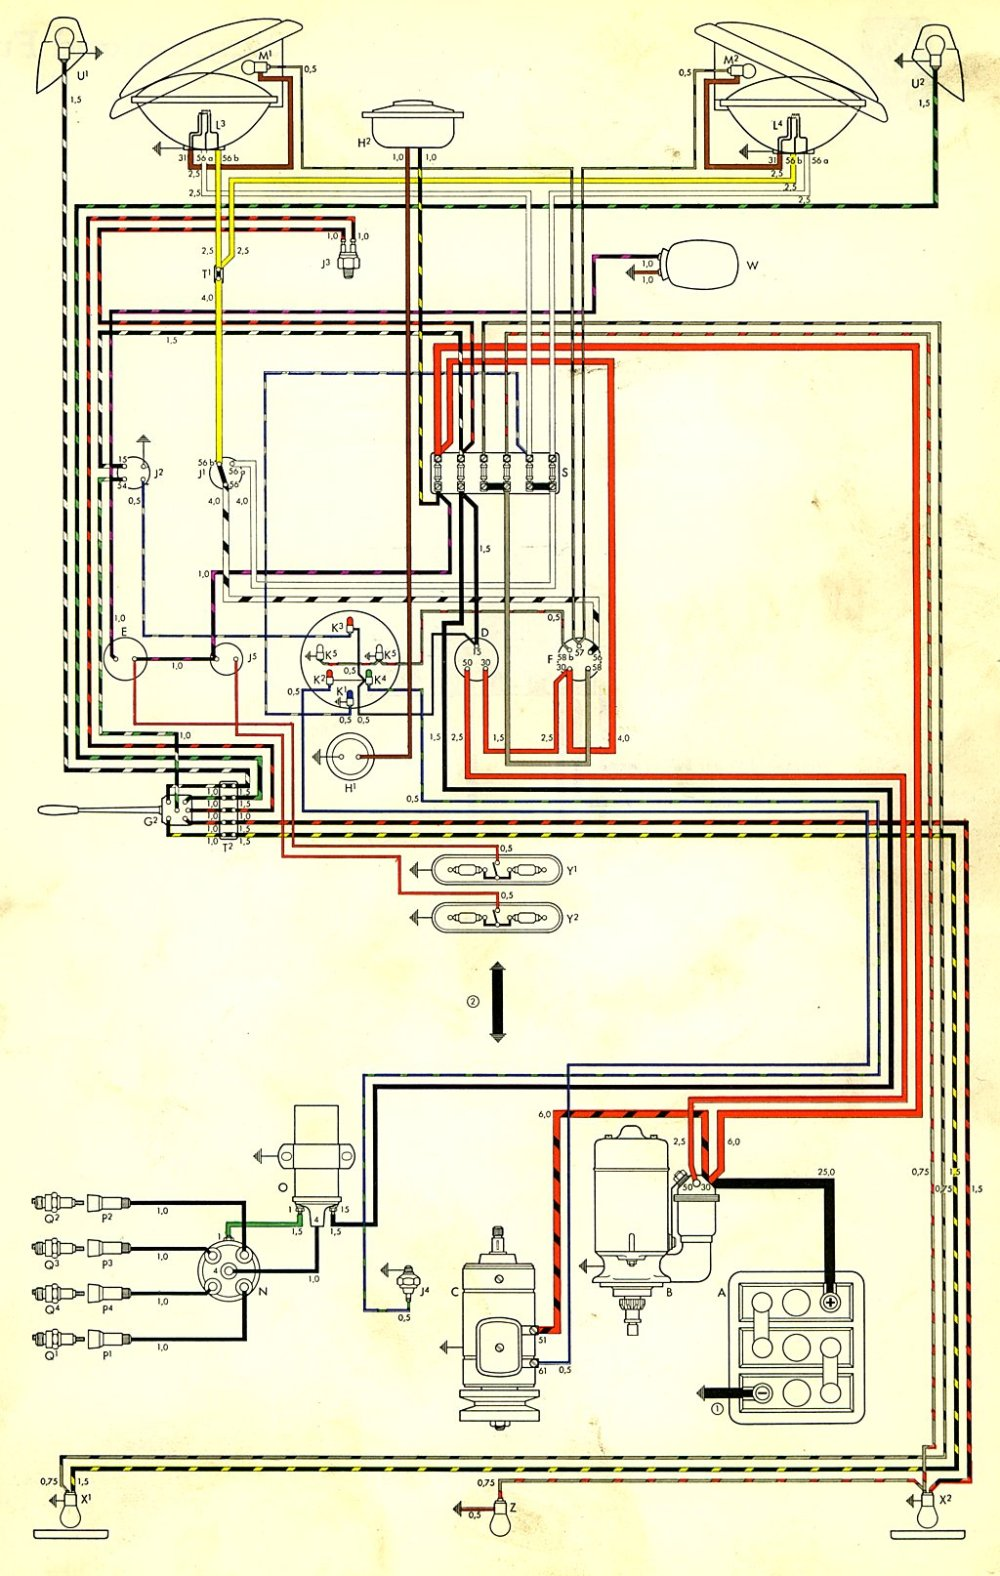 medium resolution of thesamba com type 2 wiring diagrams 1979 vw bus wiring diagram vw bus wiring location